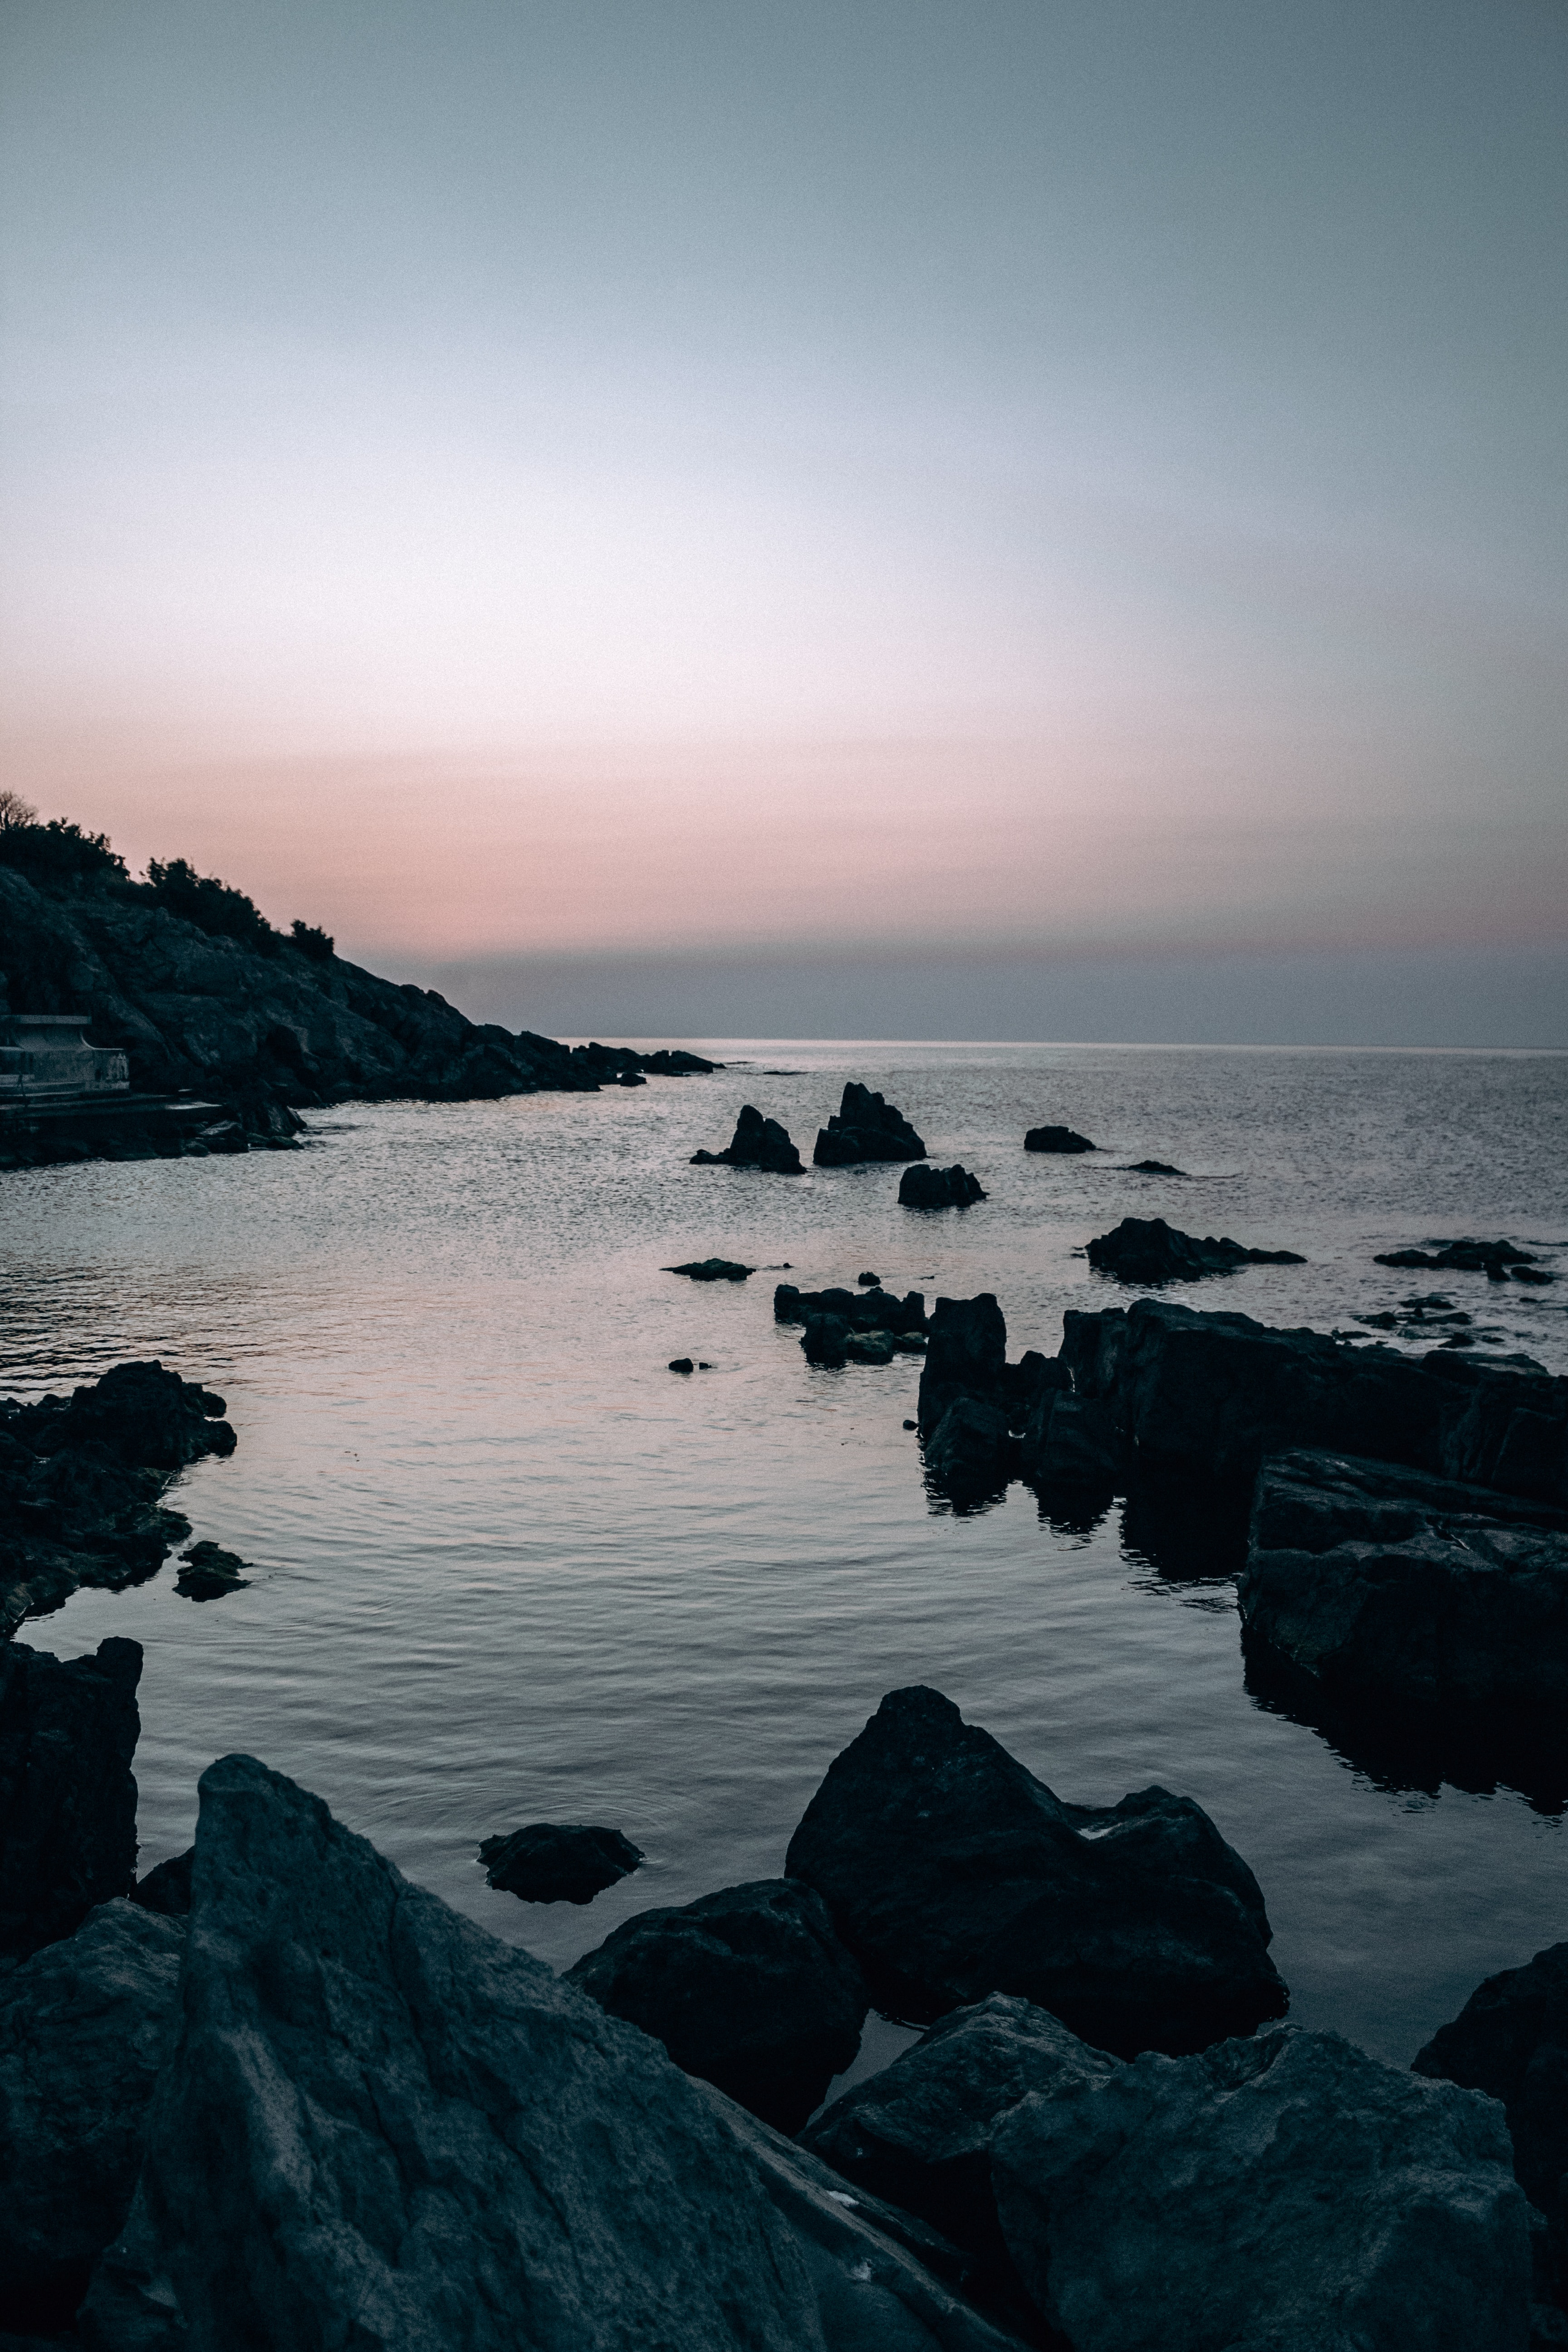 127020 download wallpaper Nature, Sea, Rocks, Stones, Dusk, Twilight, Evening screensavers and pictures for free